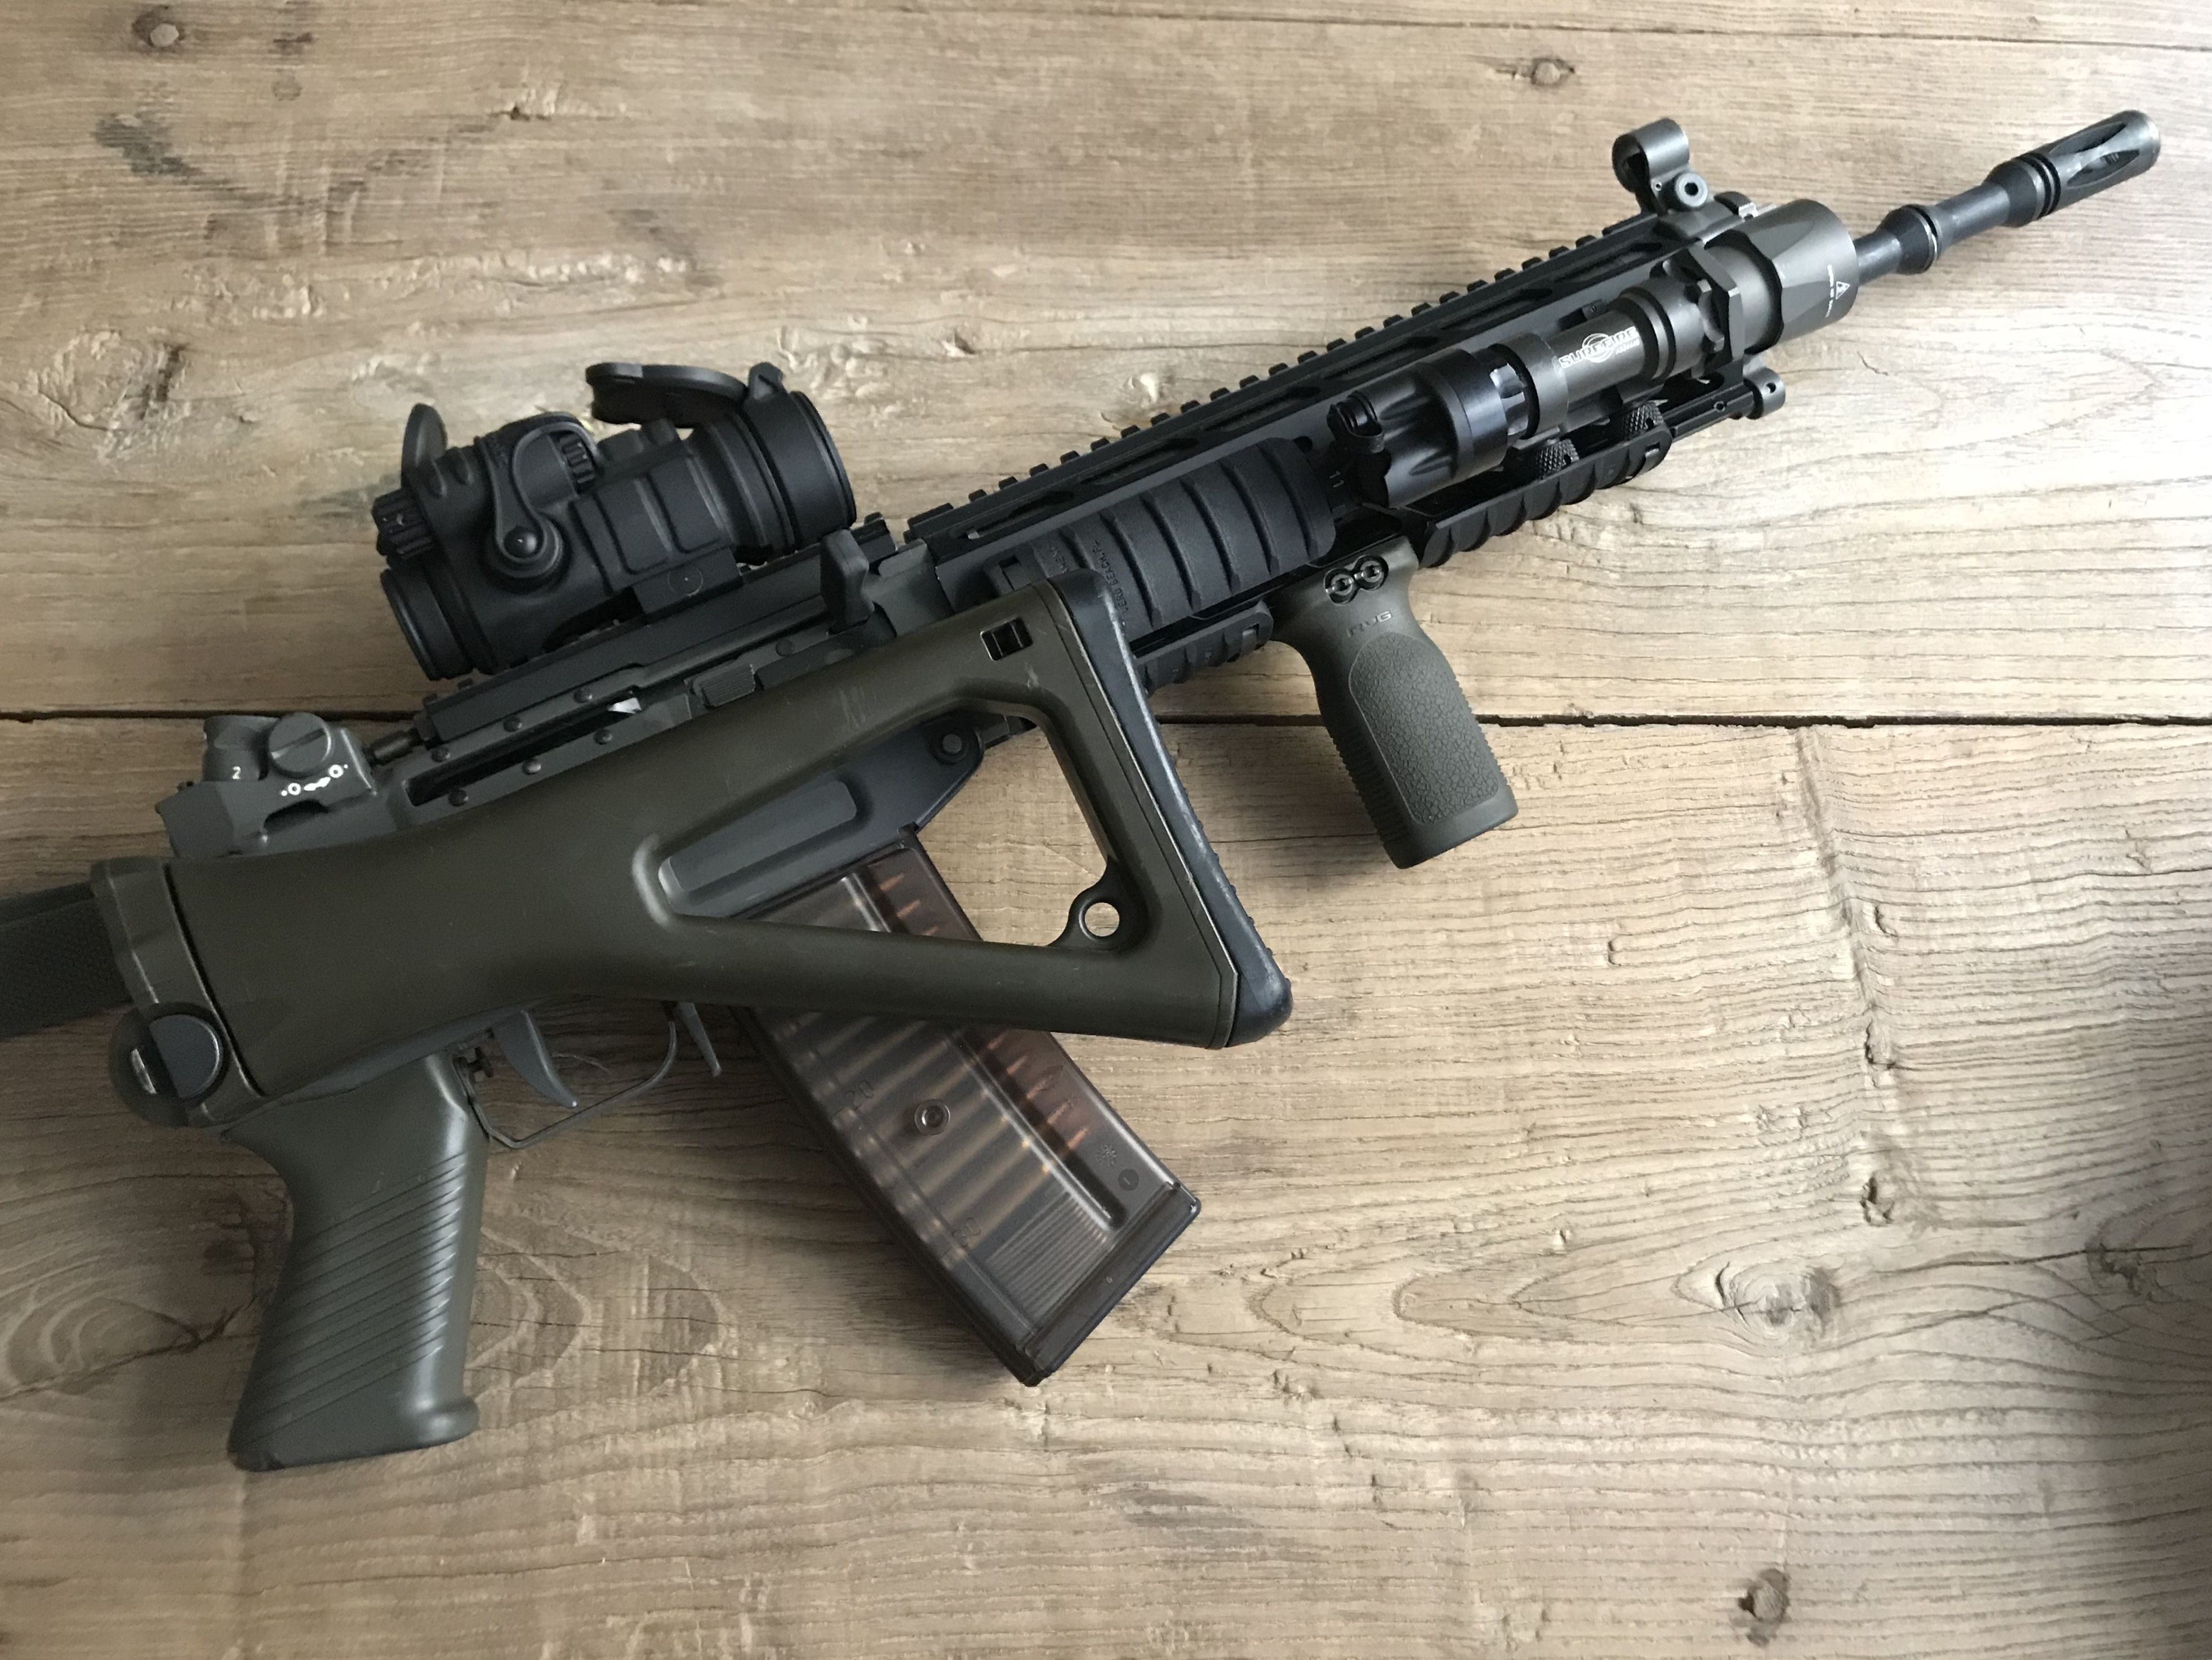 SIG 551LB w/ Aimpoint ML3, Magpul MOE RVG and SureFire M951